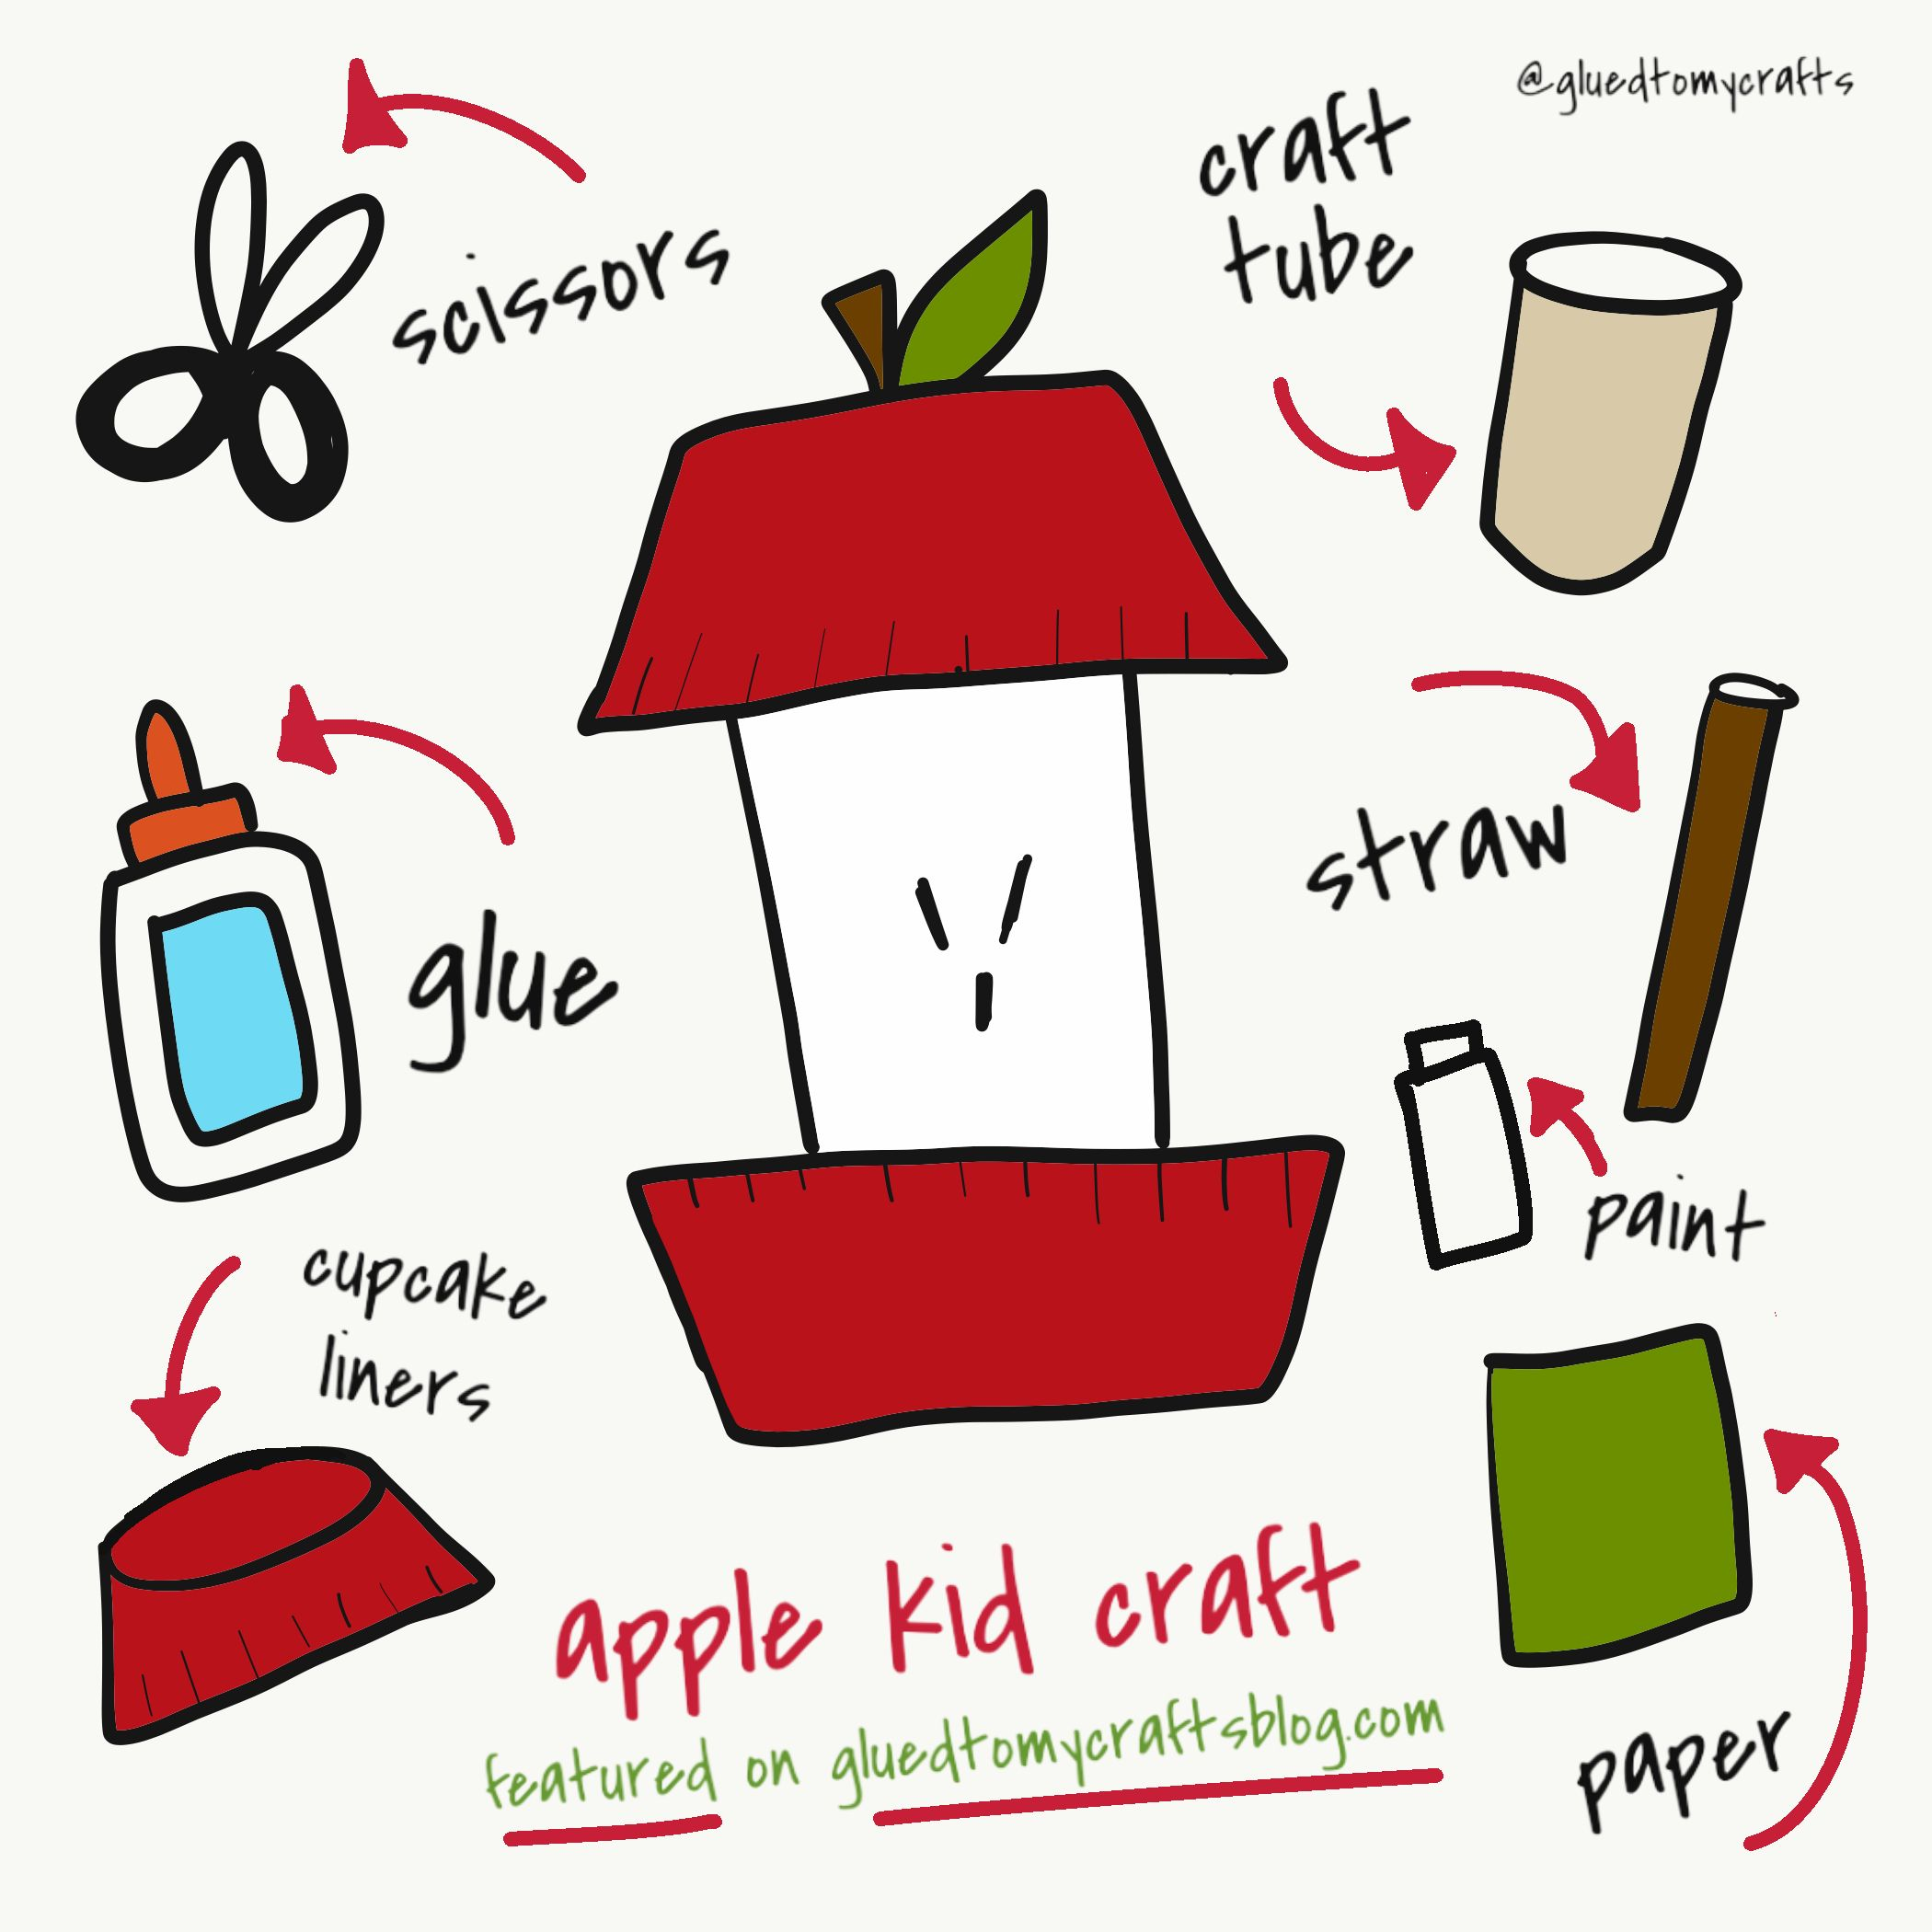 Cupcake Liner Toilet Paper Roll Apple